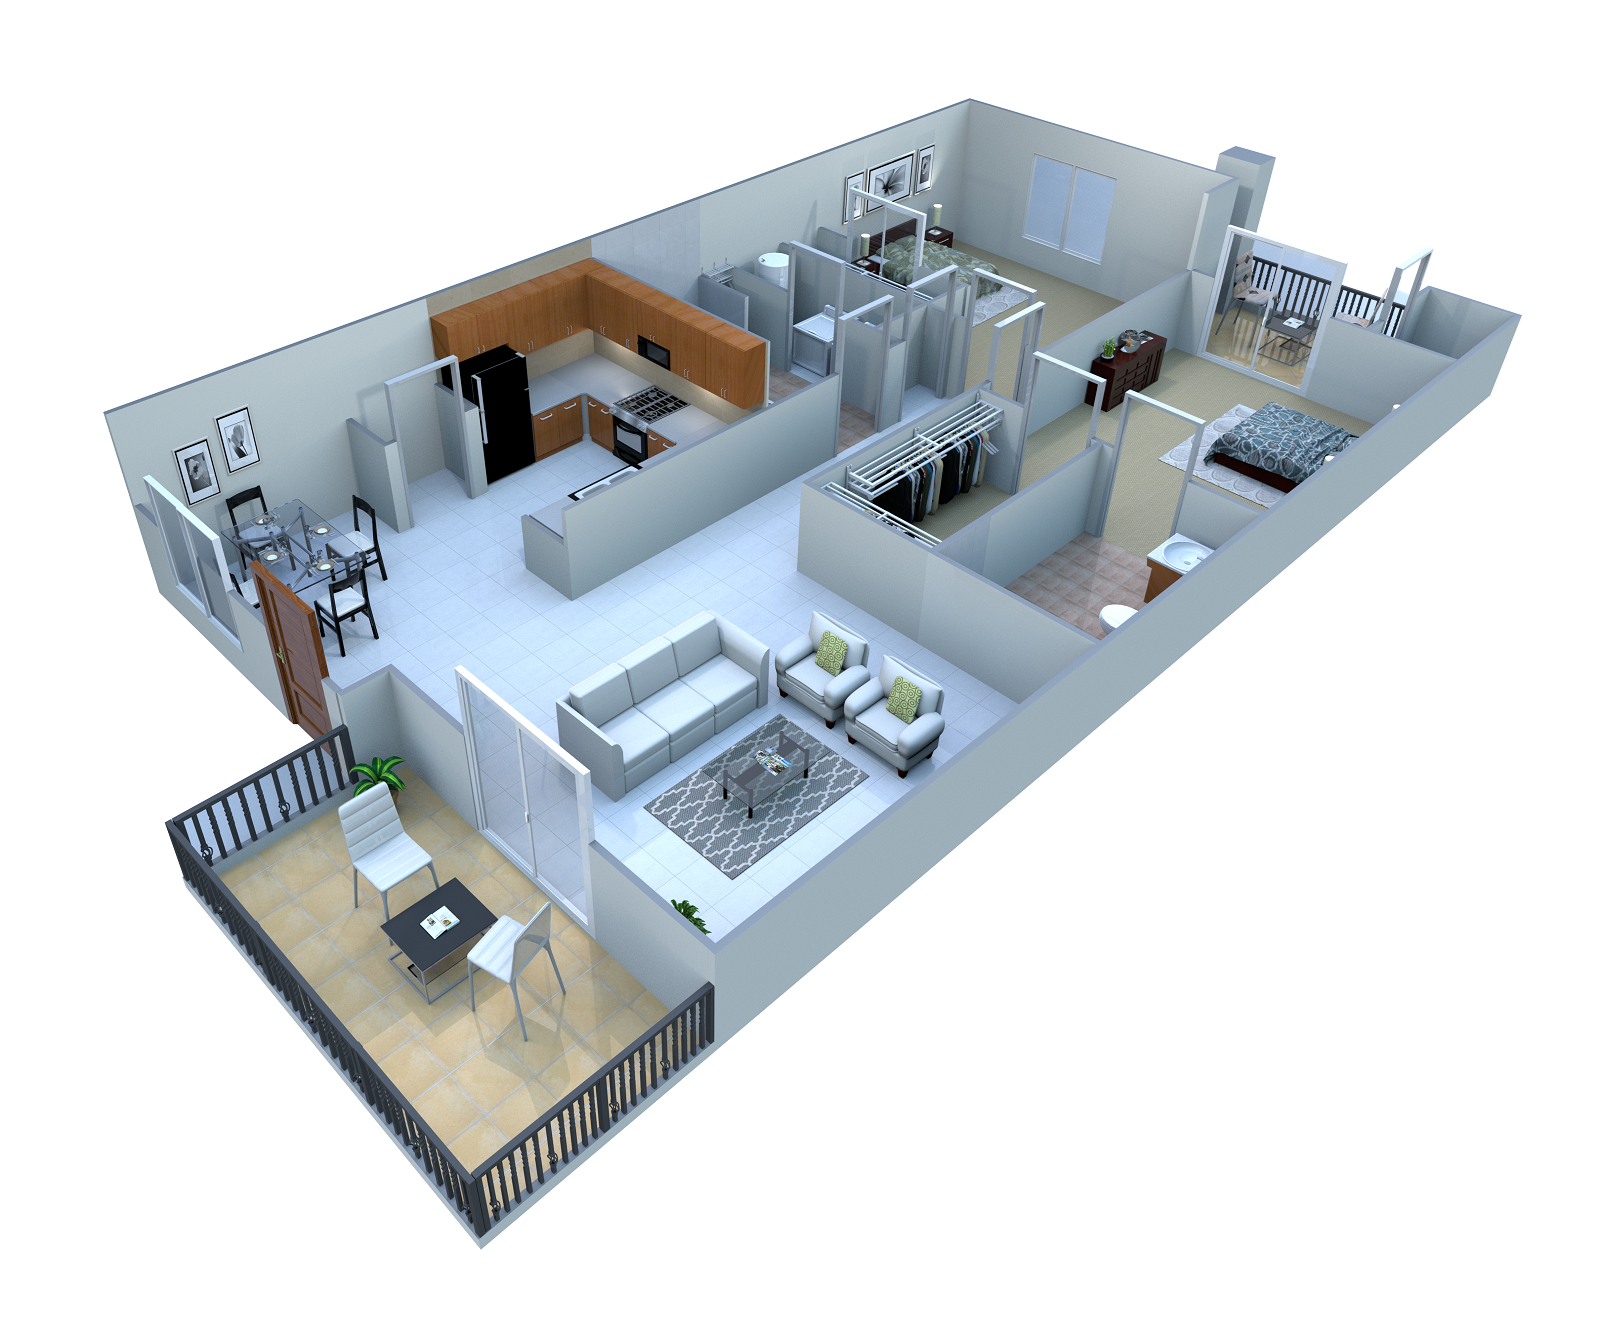 2 Bed. Flat Floor Plan 1